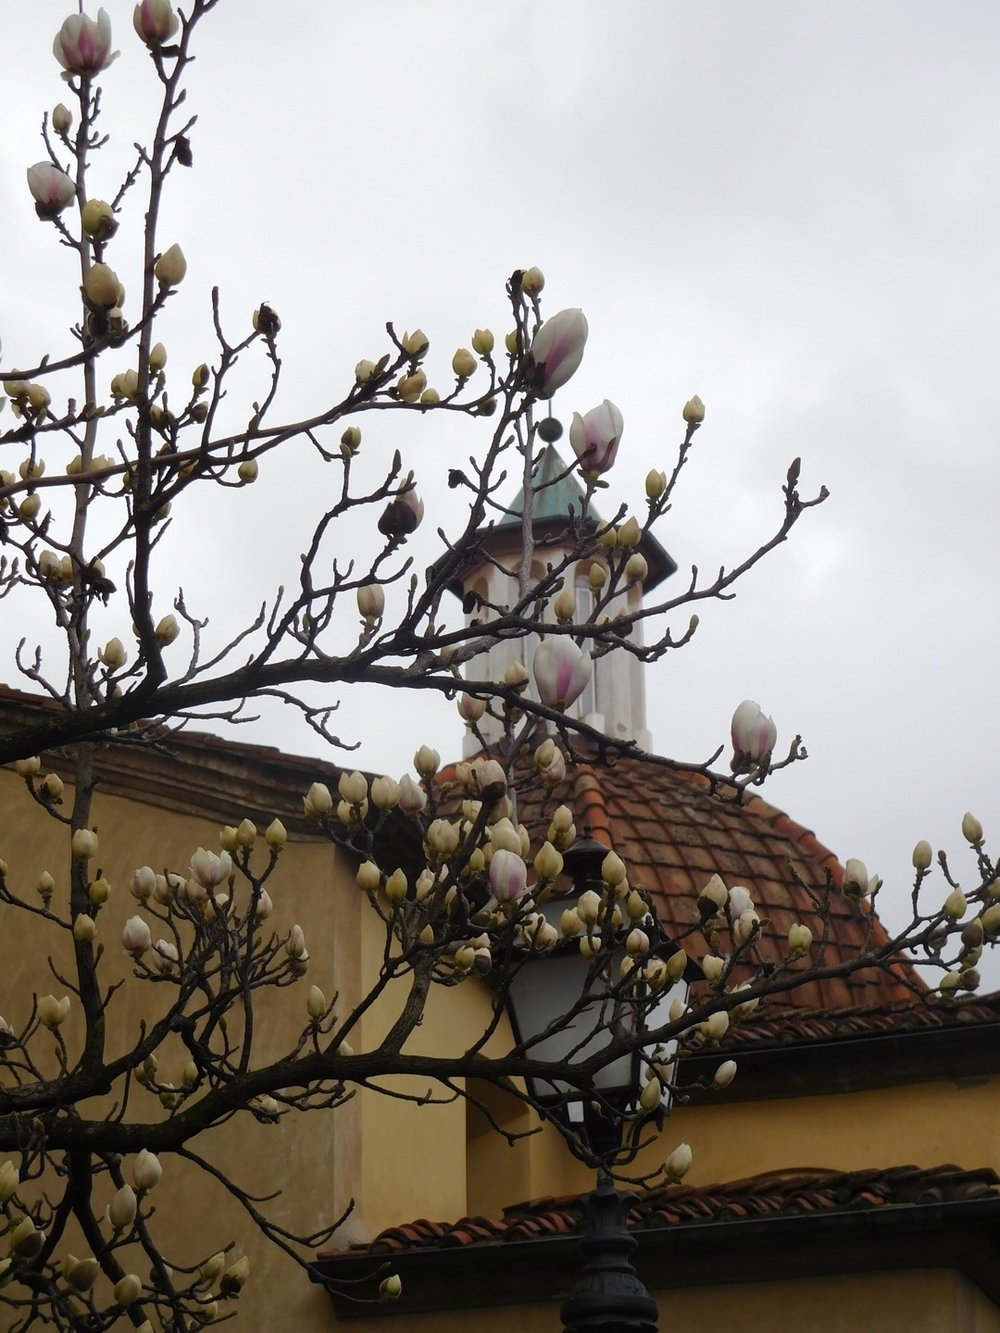 A magnolia tree just about ready to burst into bloom along Corso Garibaldi in Lucca, early March 2019